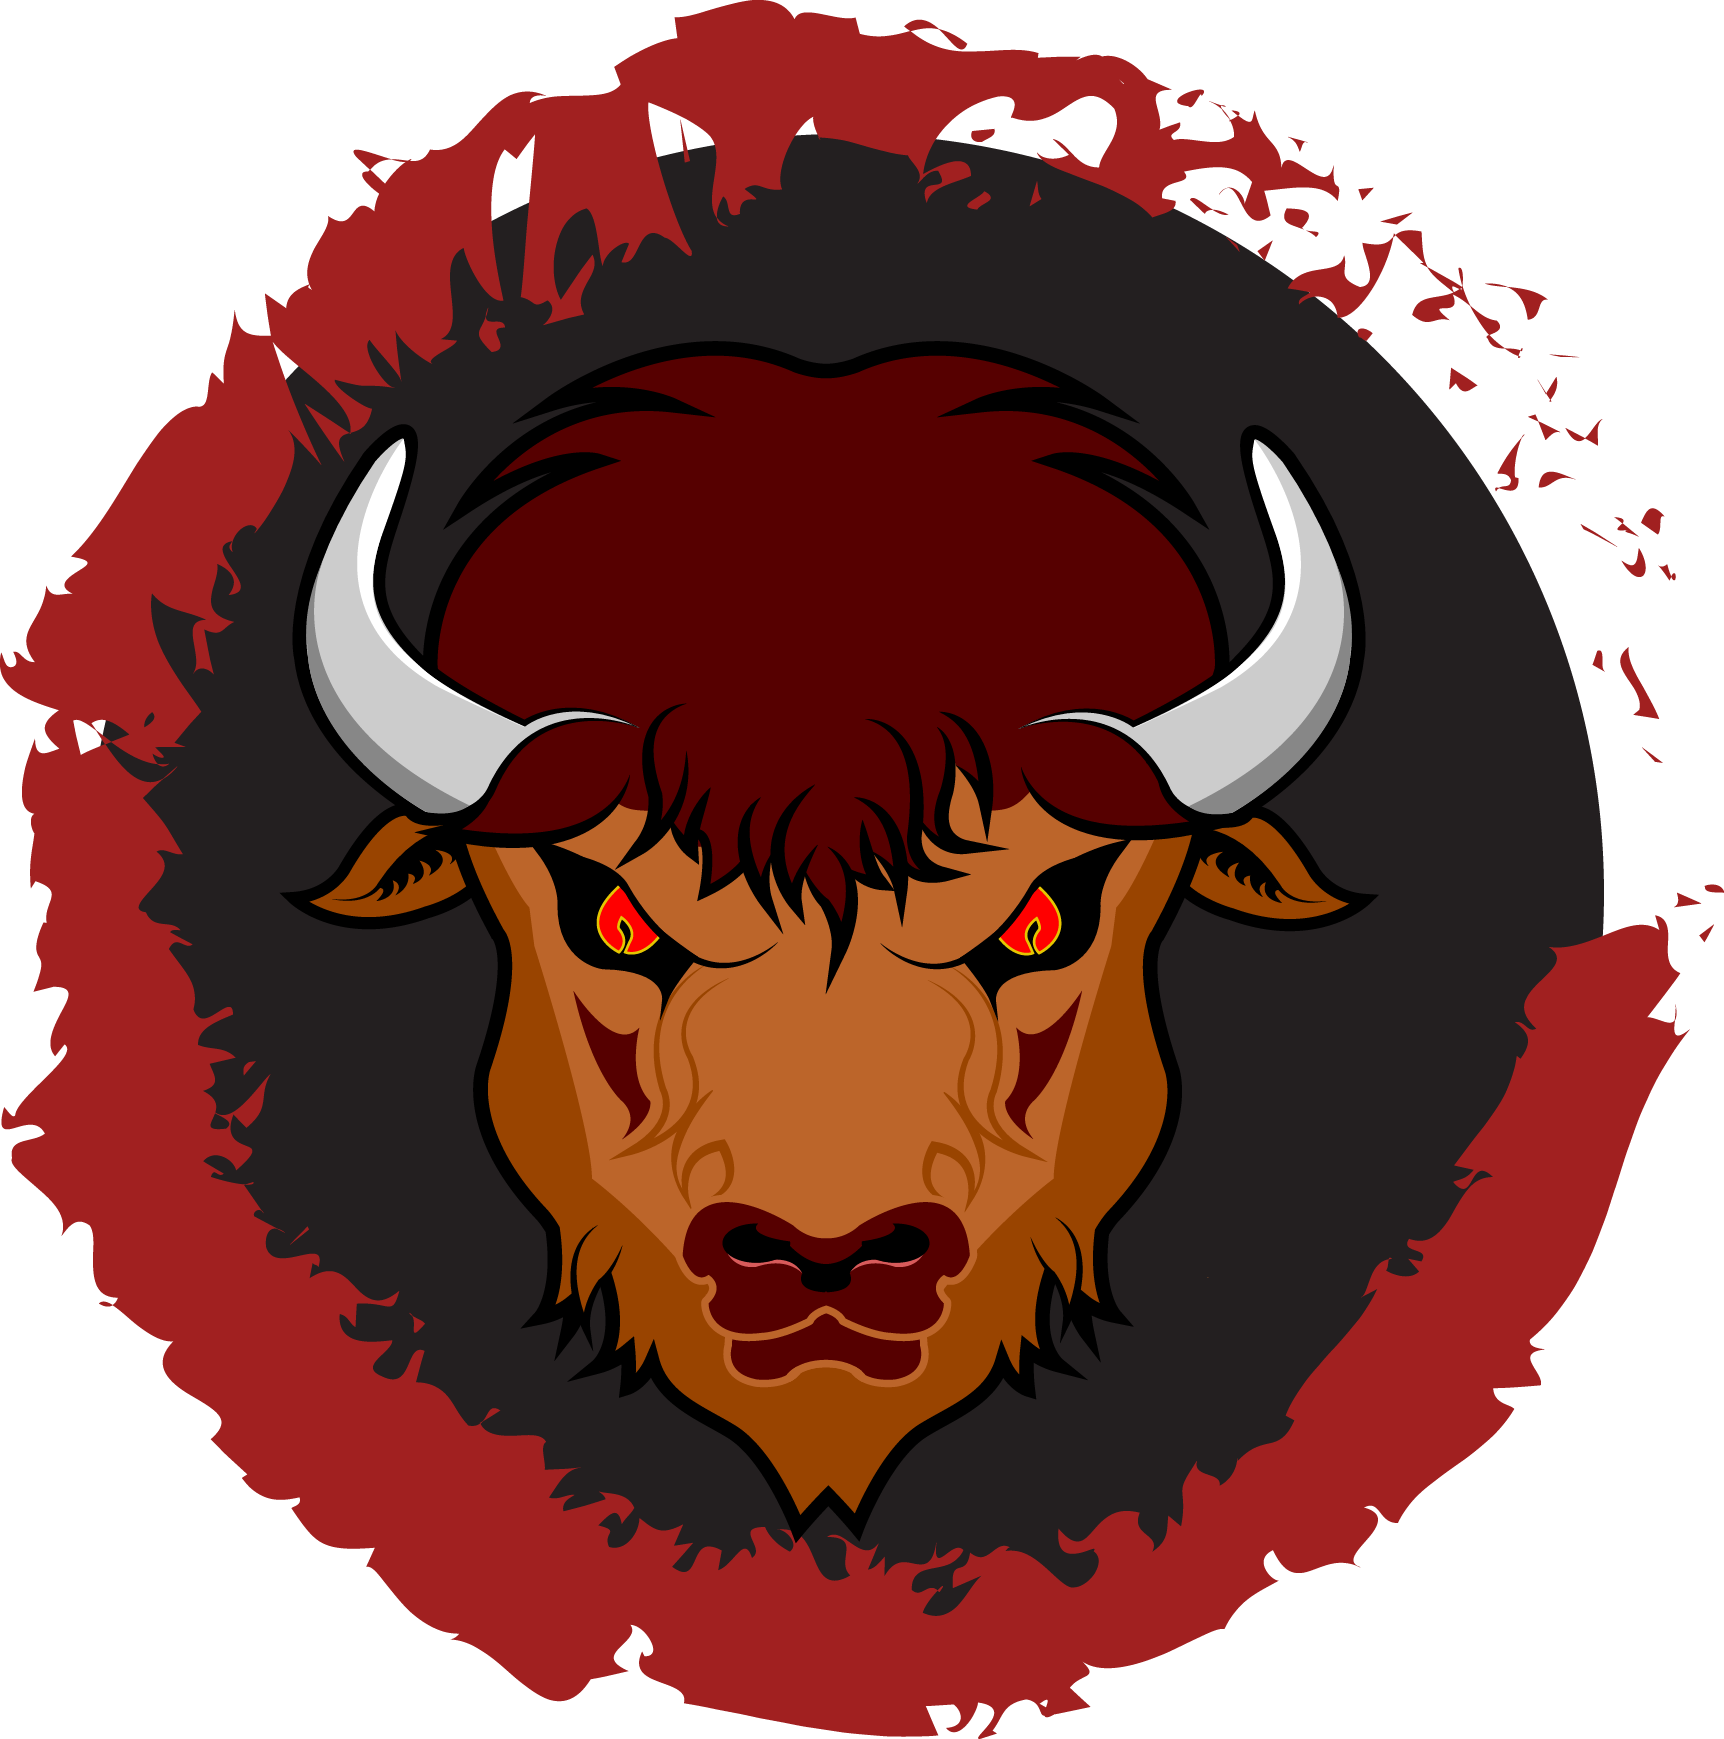 Yak clipart bison. About us buffalo heats